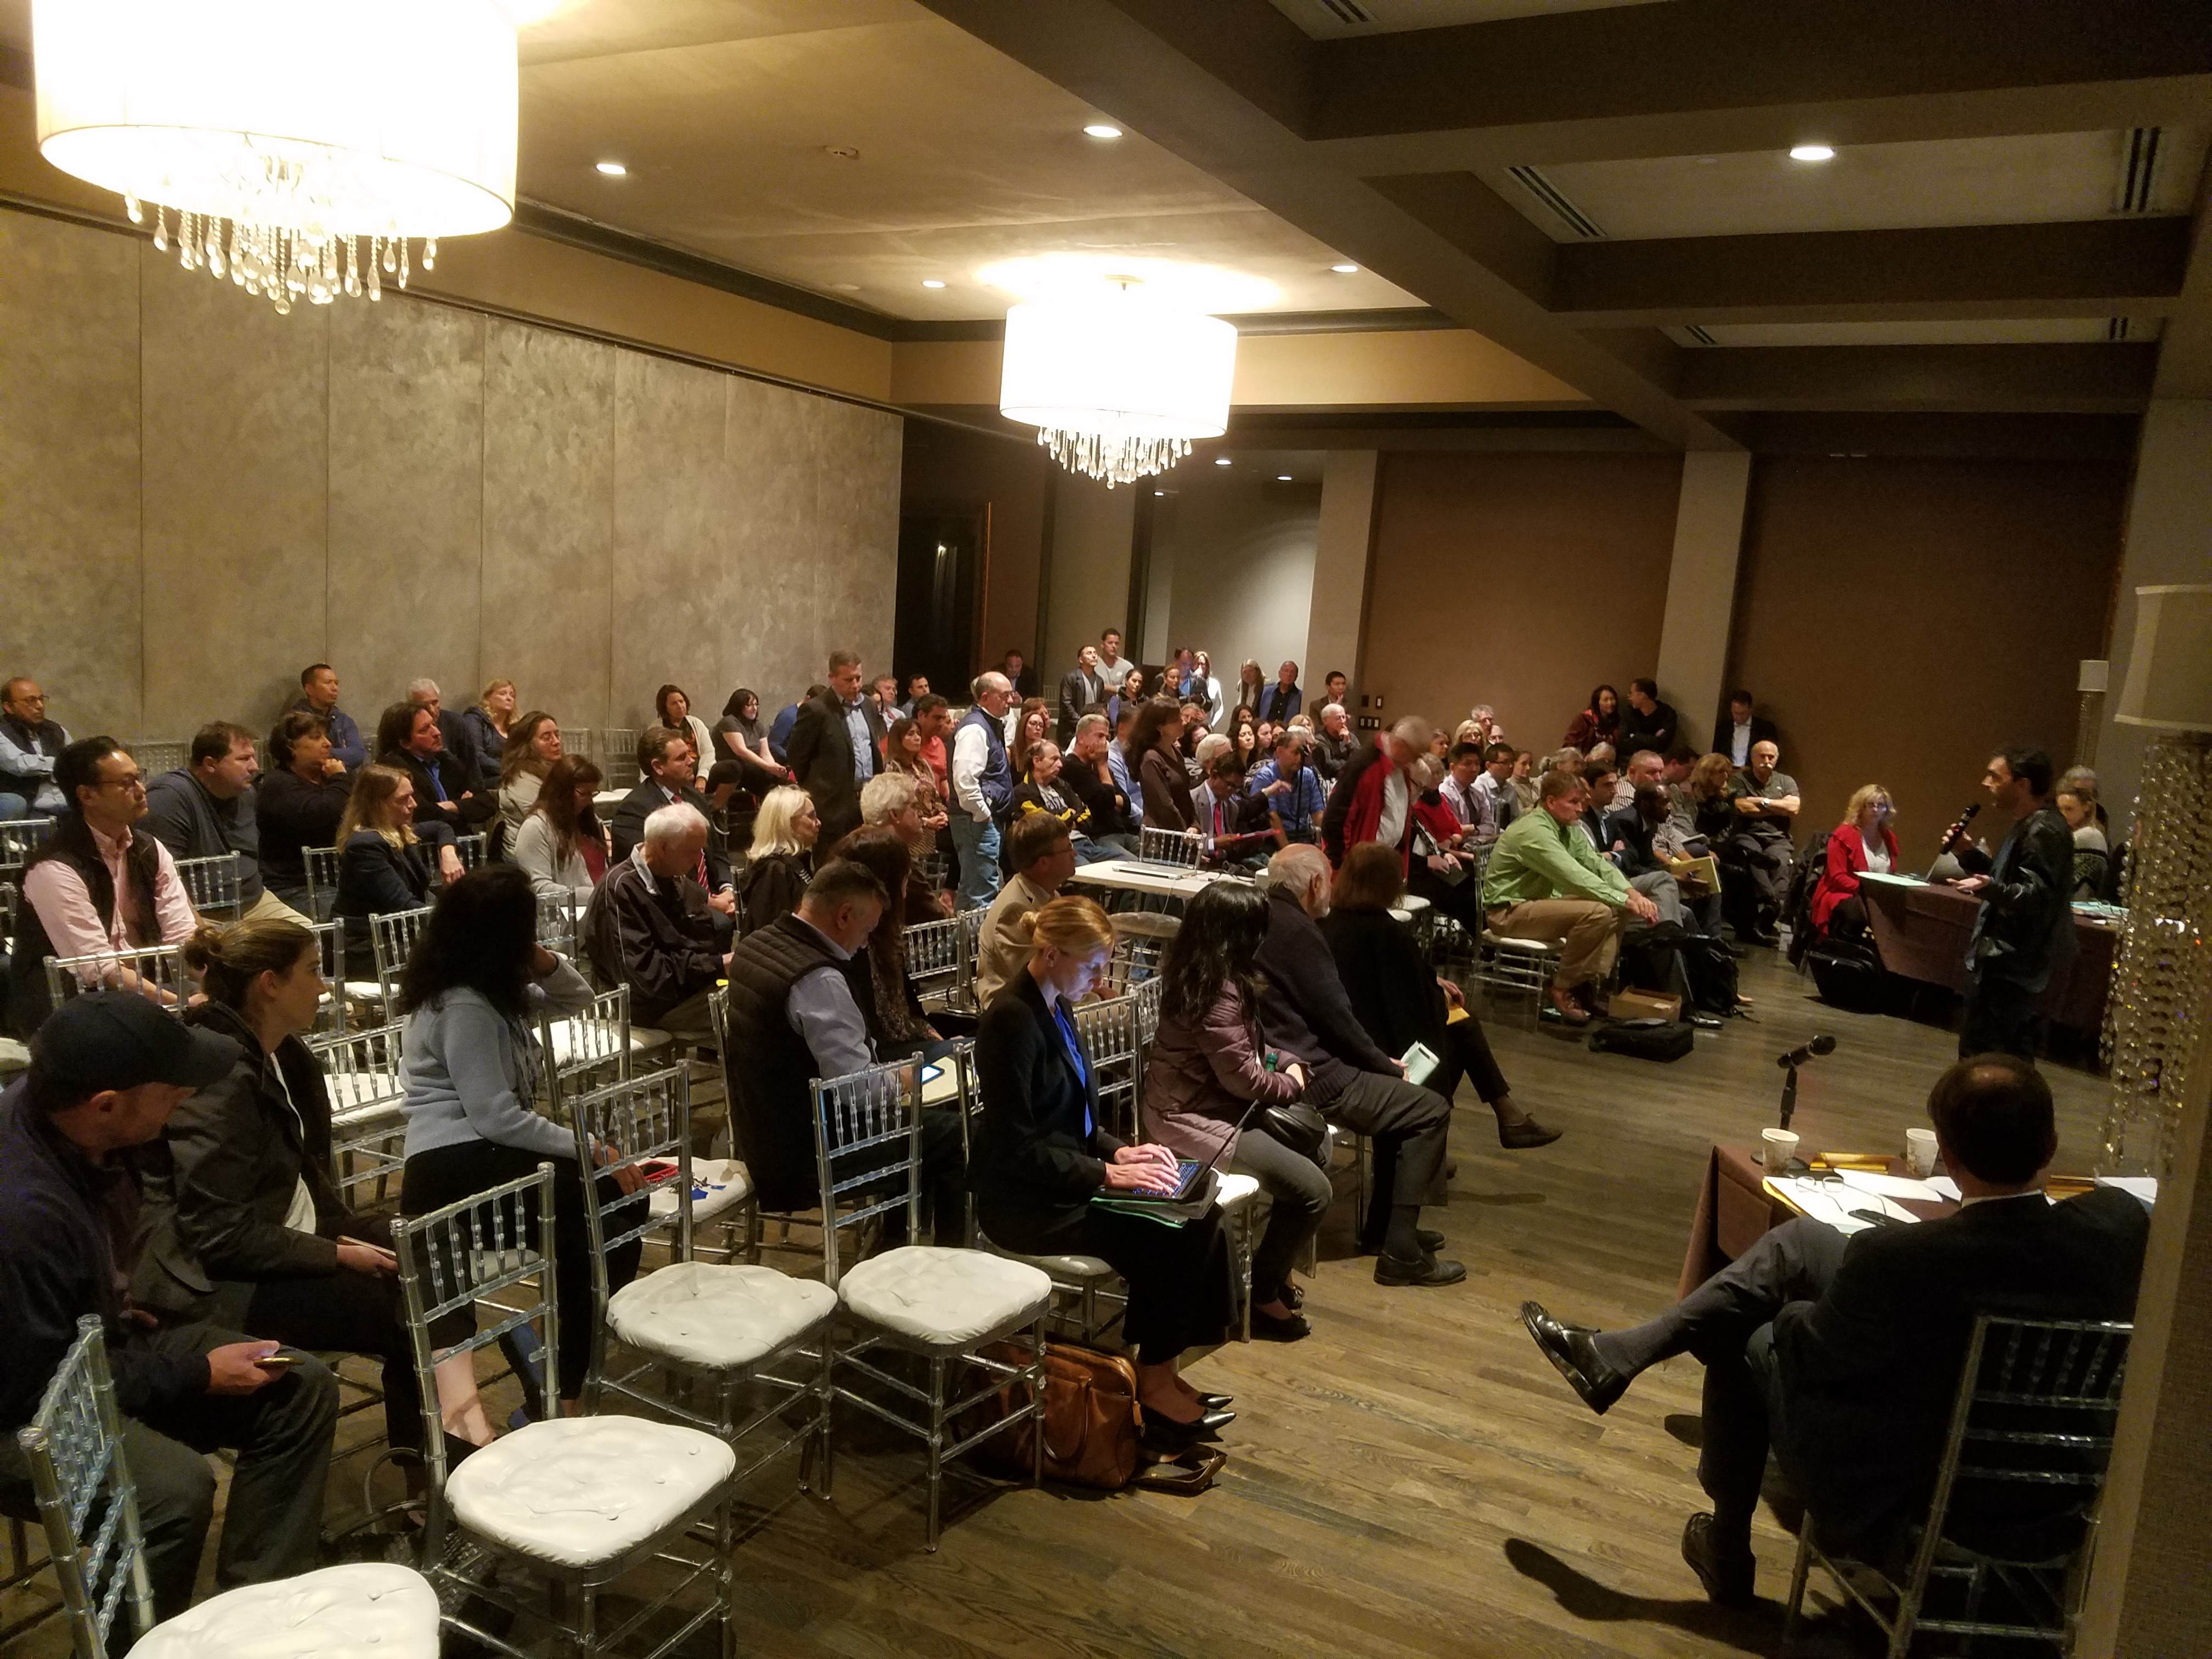 Lake Success residents blast cell node proposal - Great Neck News